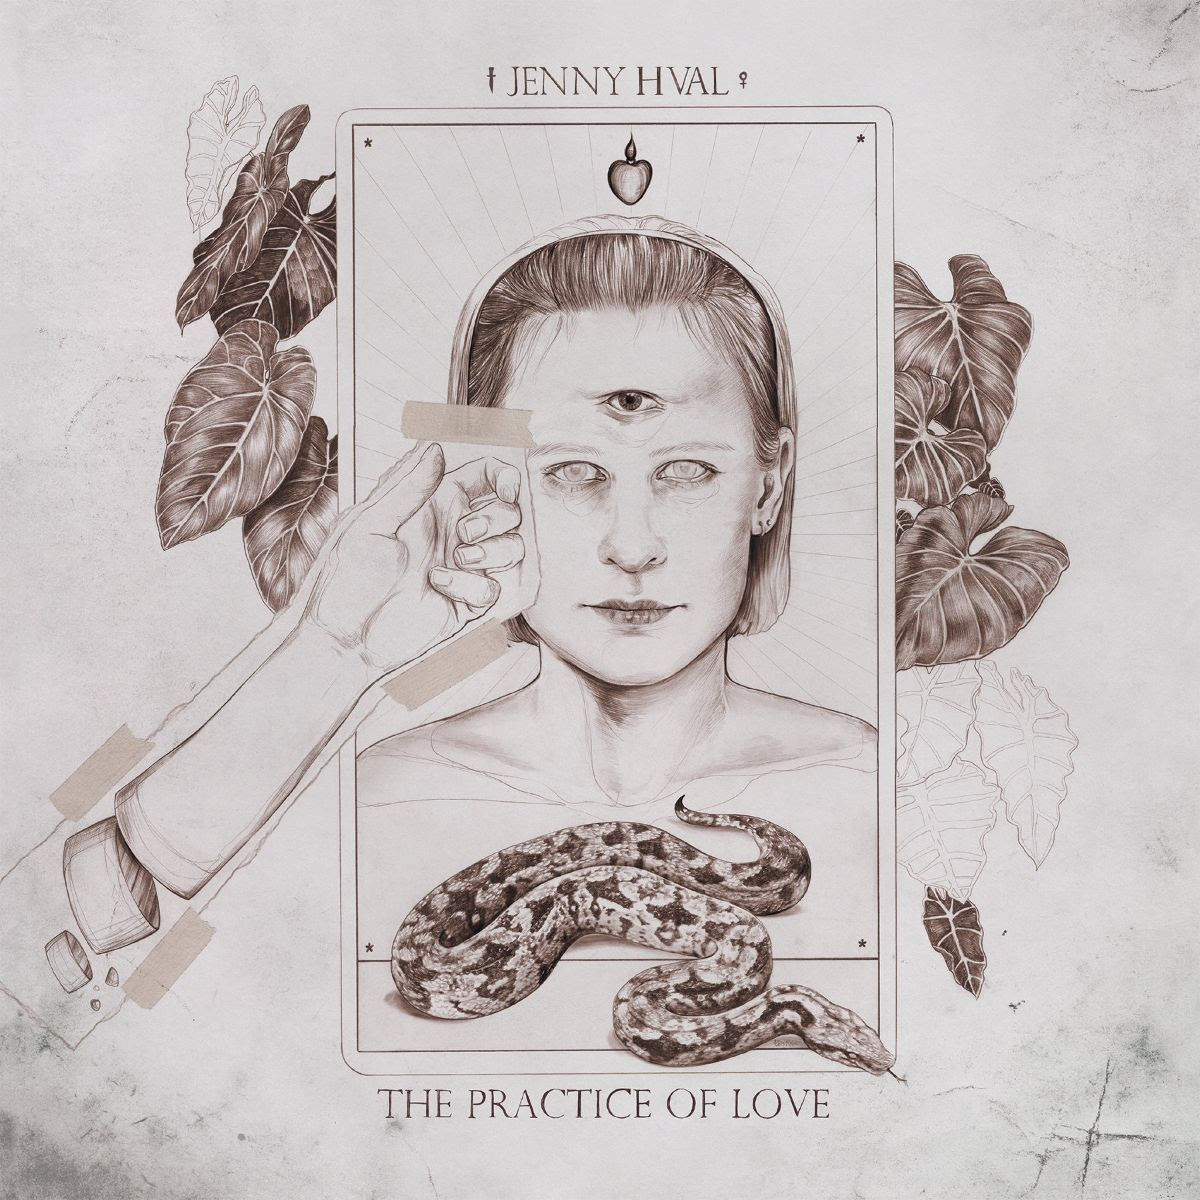 Jenny Hval the practice of love album cover artwork